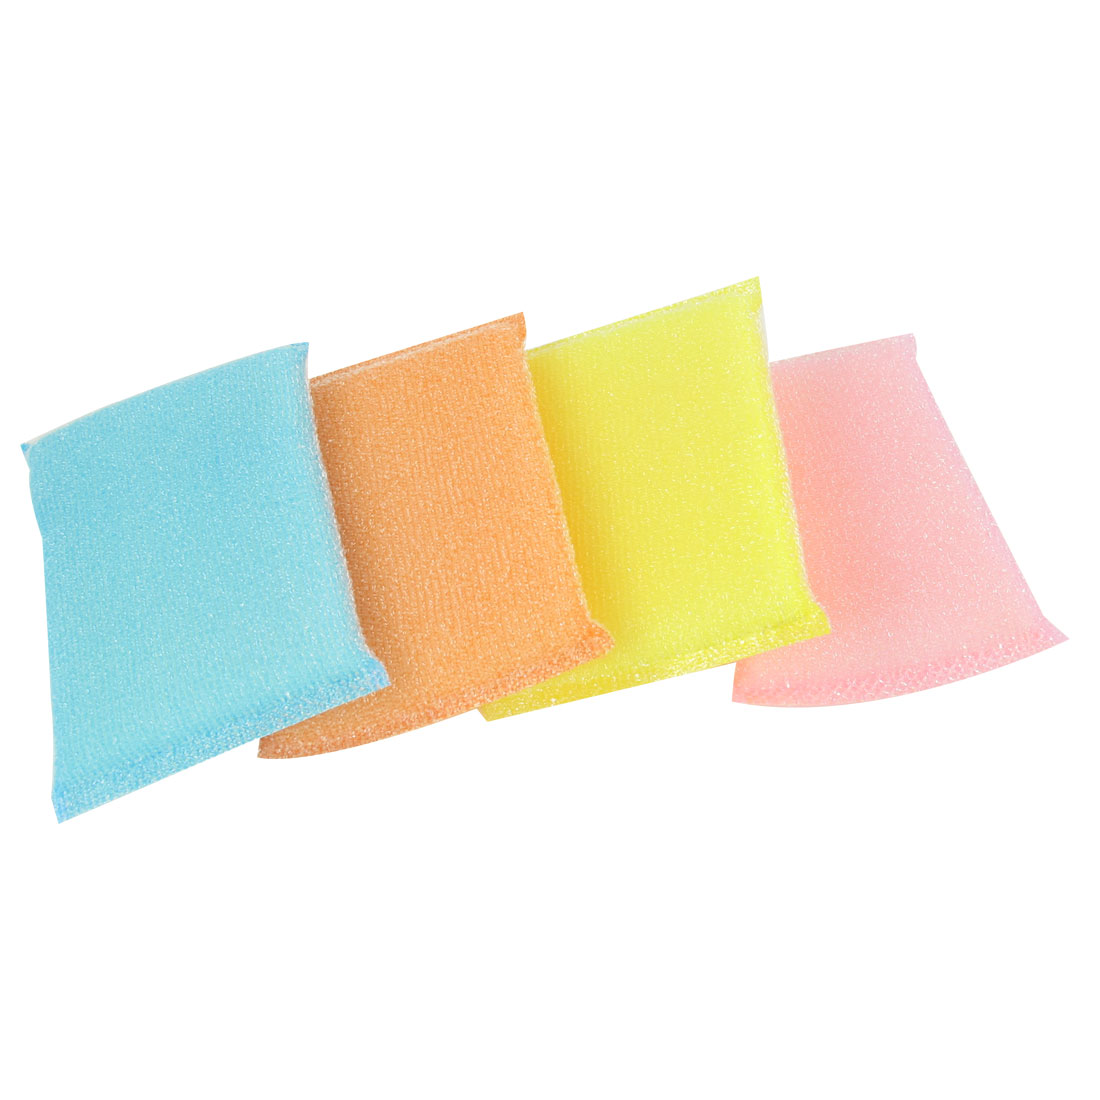 4 Pcs Home Kitchen Assorted Color Scrub Sponge Dish Pad Bowl Cup Cleaner